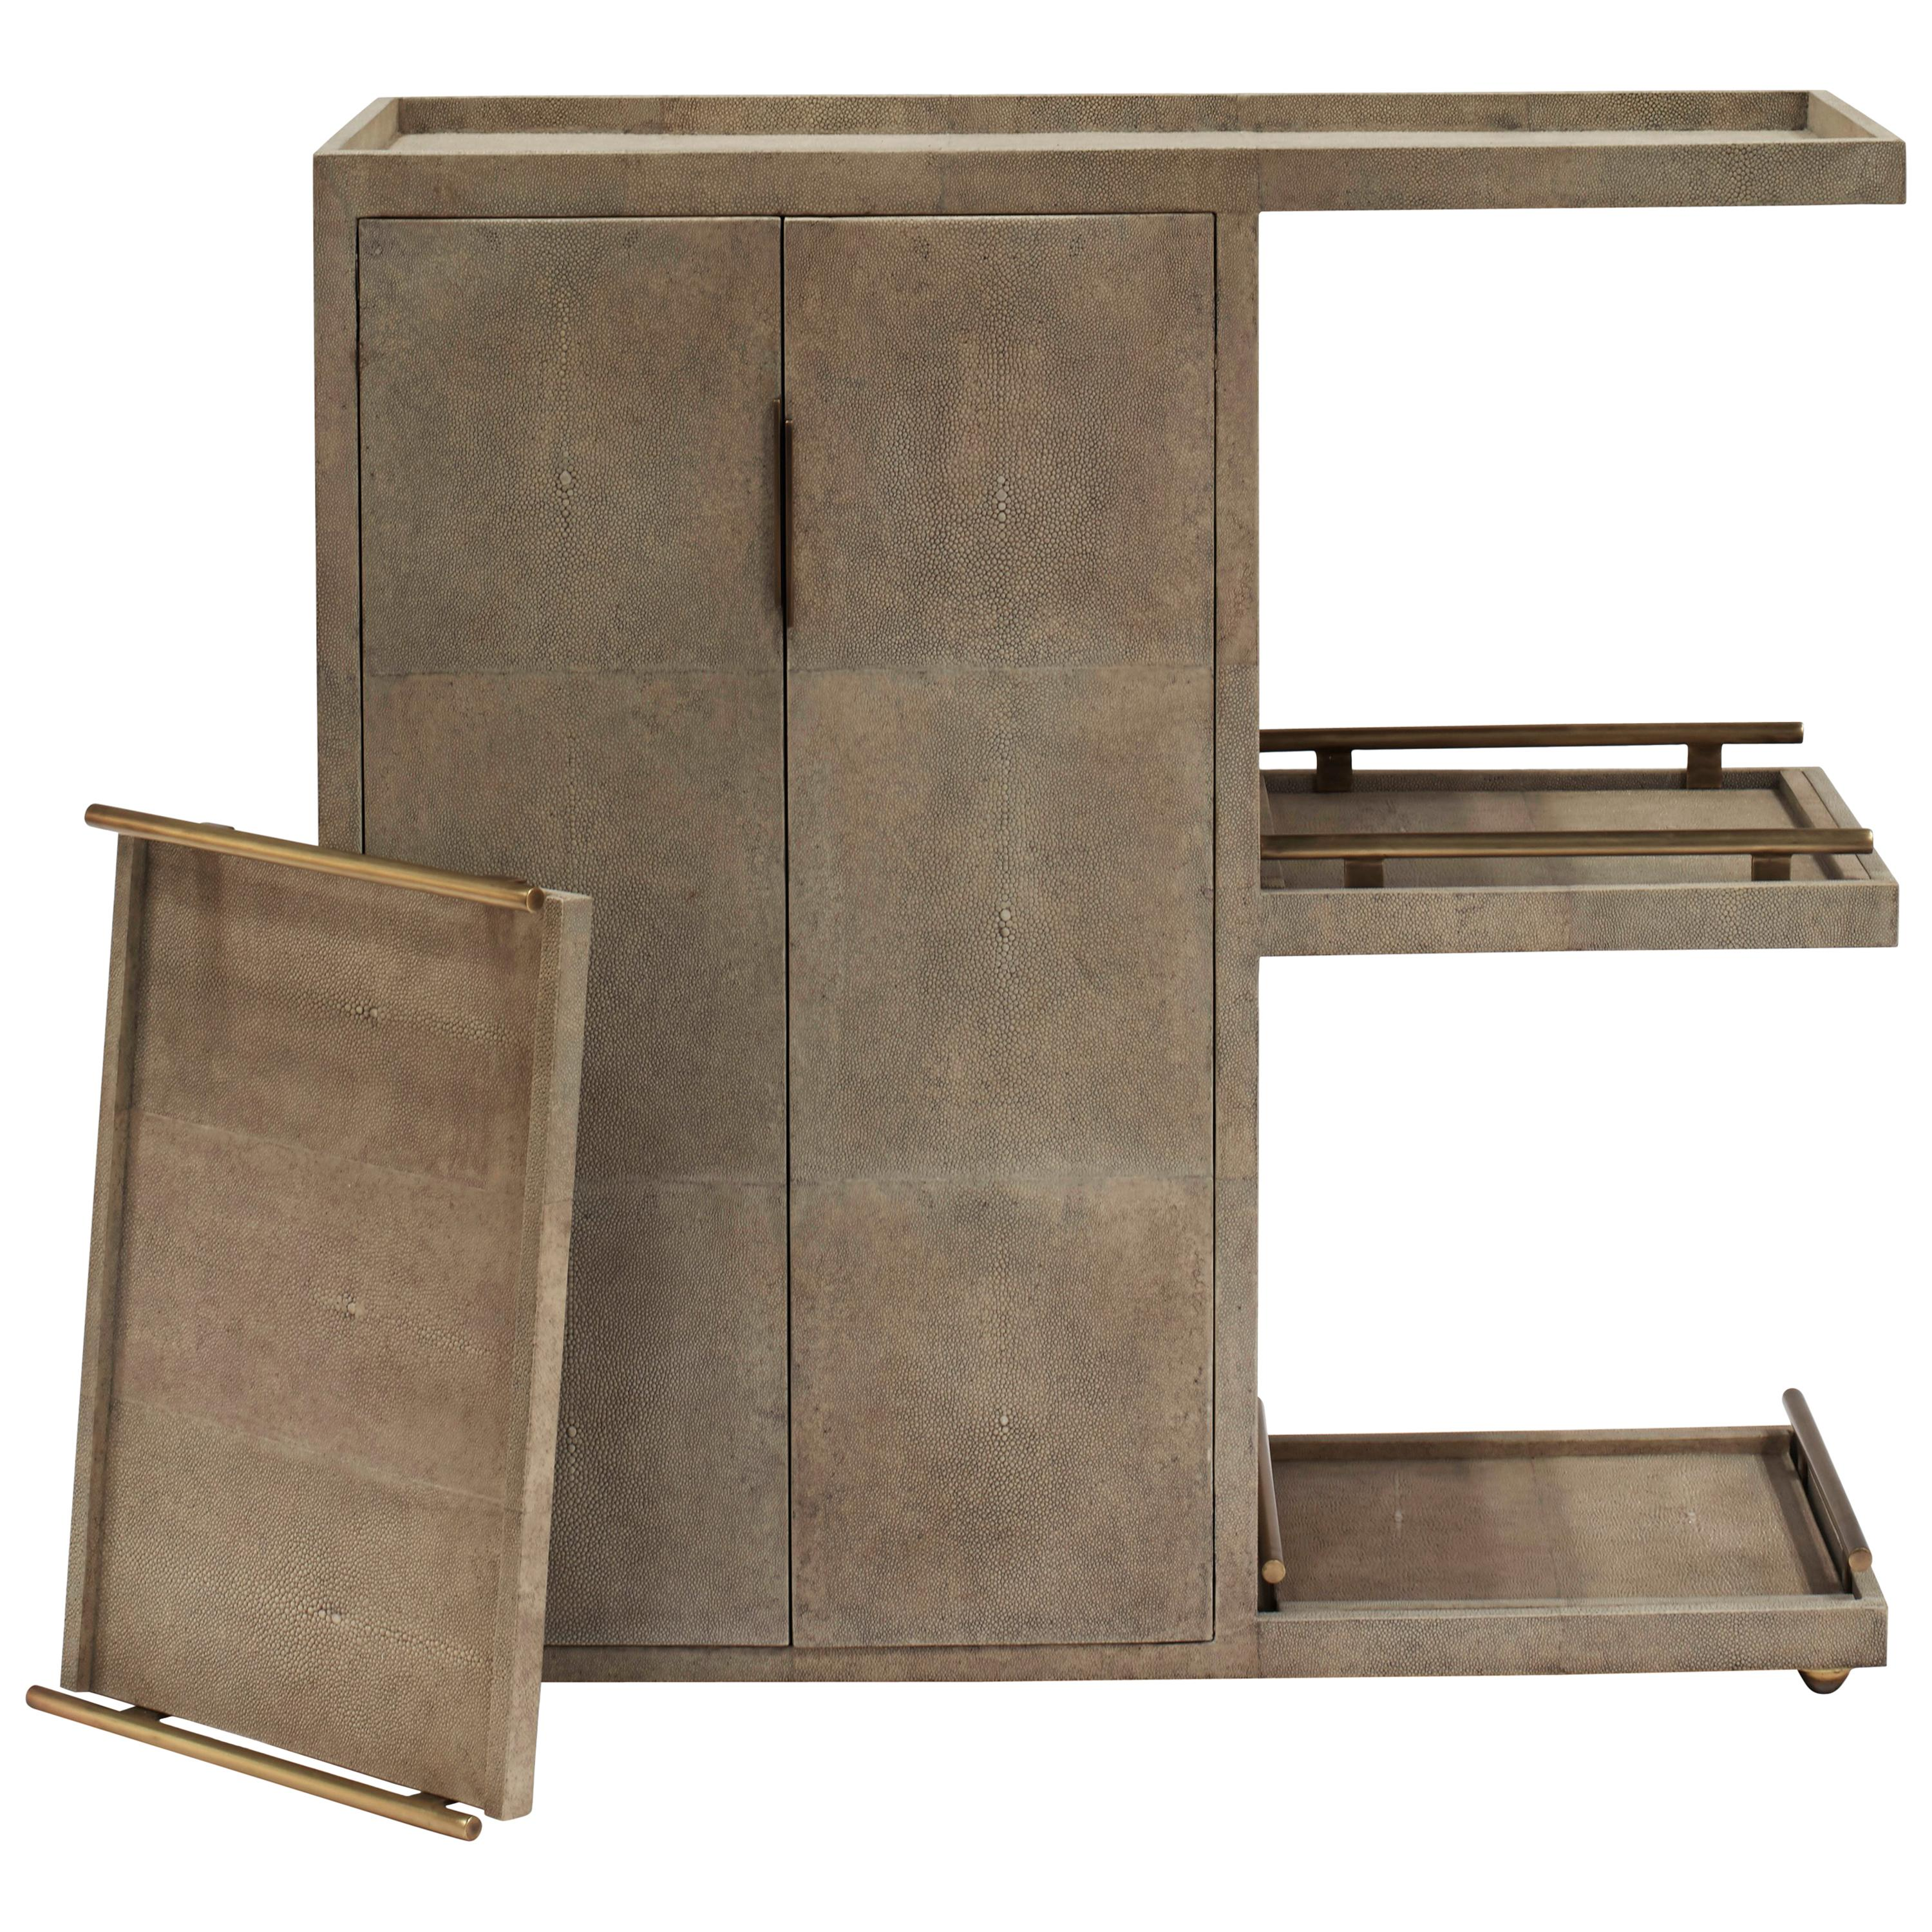 Bar Trolley in Cream Shagreen Shell with 3 Removable Trays by Kifu Paris